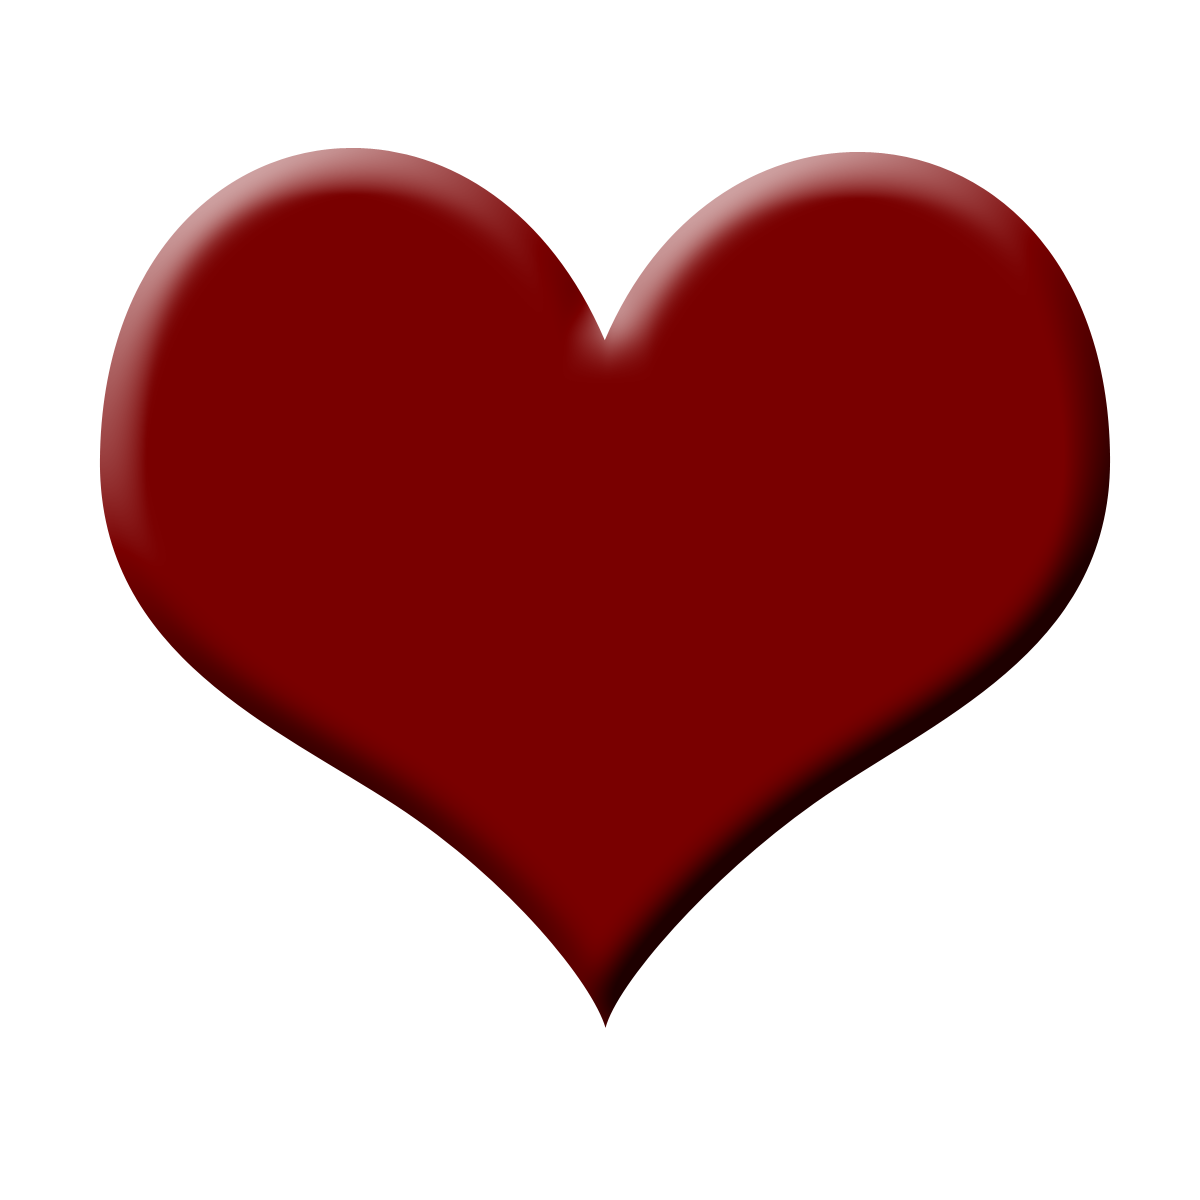 medical-heart-beat-clipart-cliparthut-free-clipart-7VhROl-clipart.png